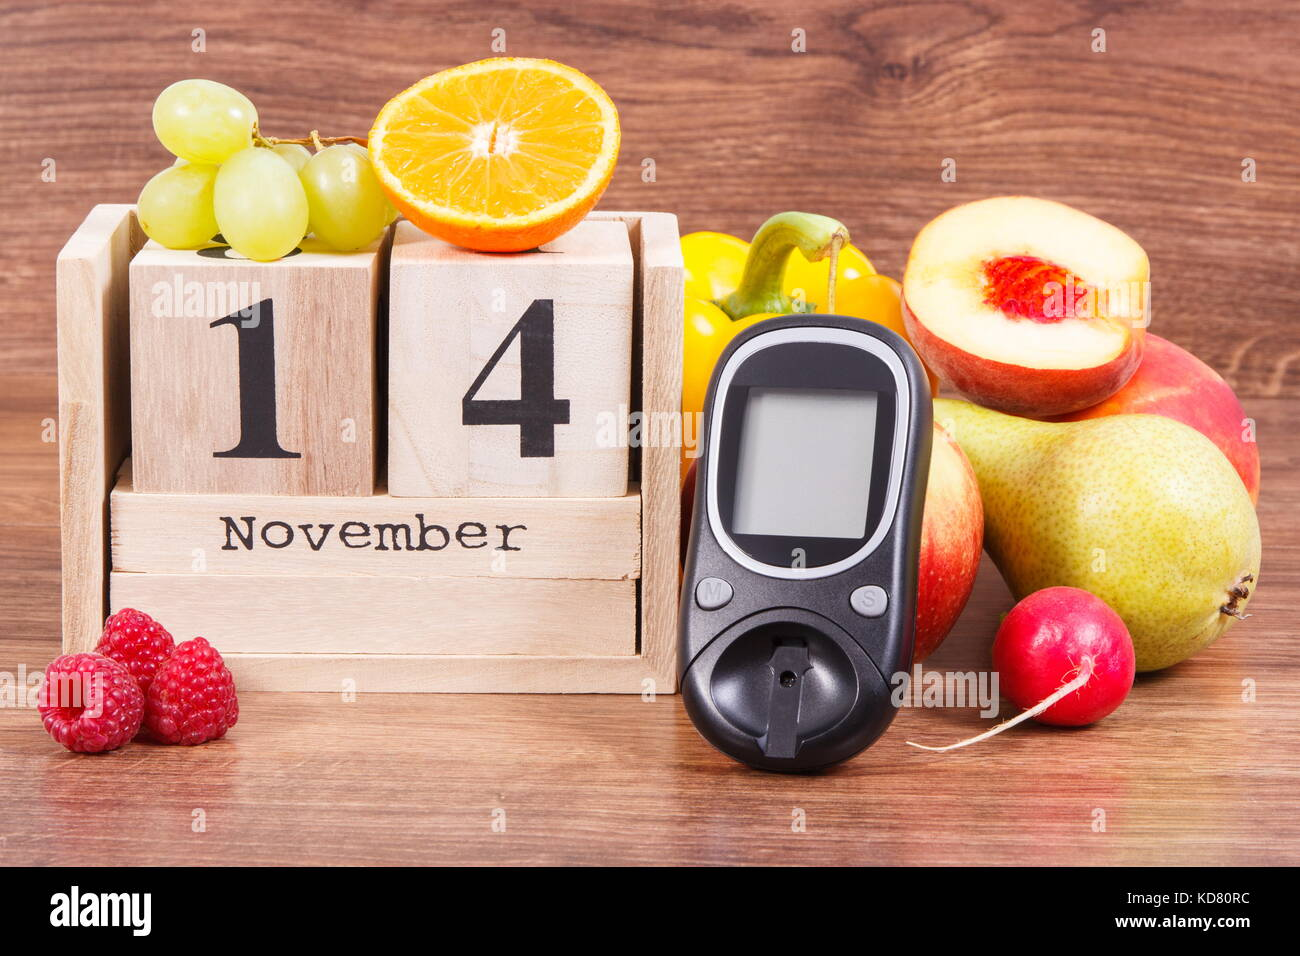 Date 14 november as symbol of world diabetes day glucose meter date 14 november as symbol of world diabetes day glucose meter for measuring sugar level and fruits with vegetables concept of fighting disease biocorpaavc